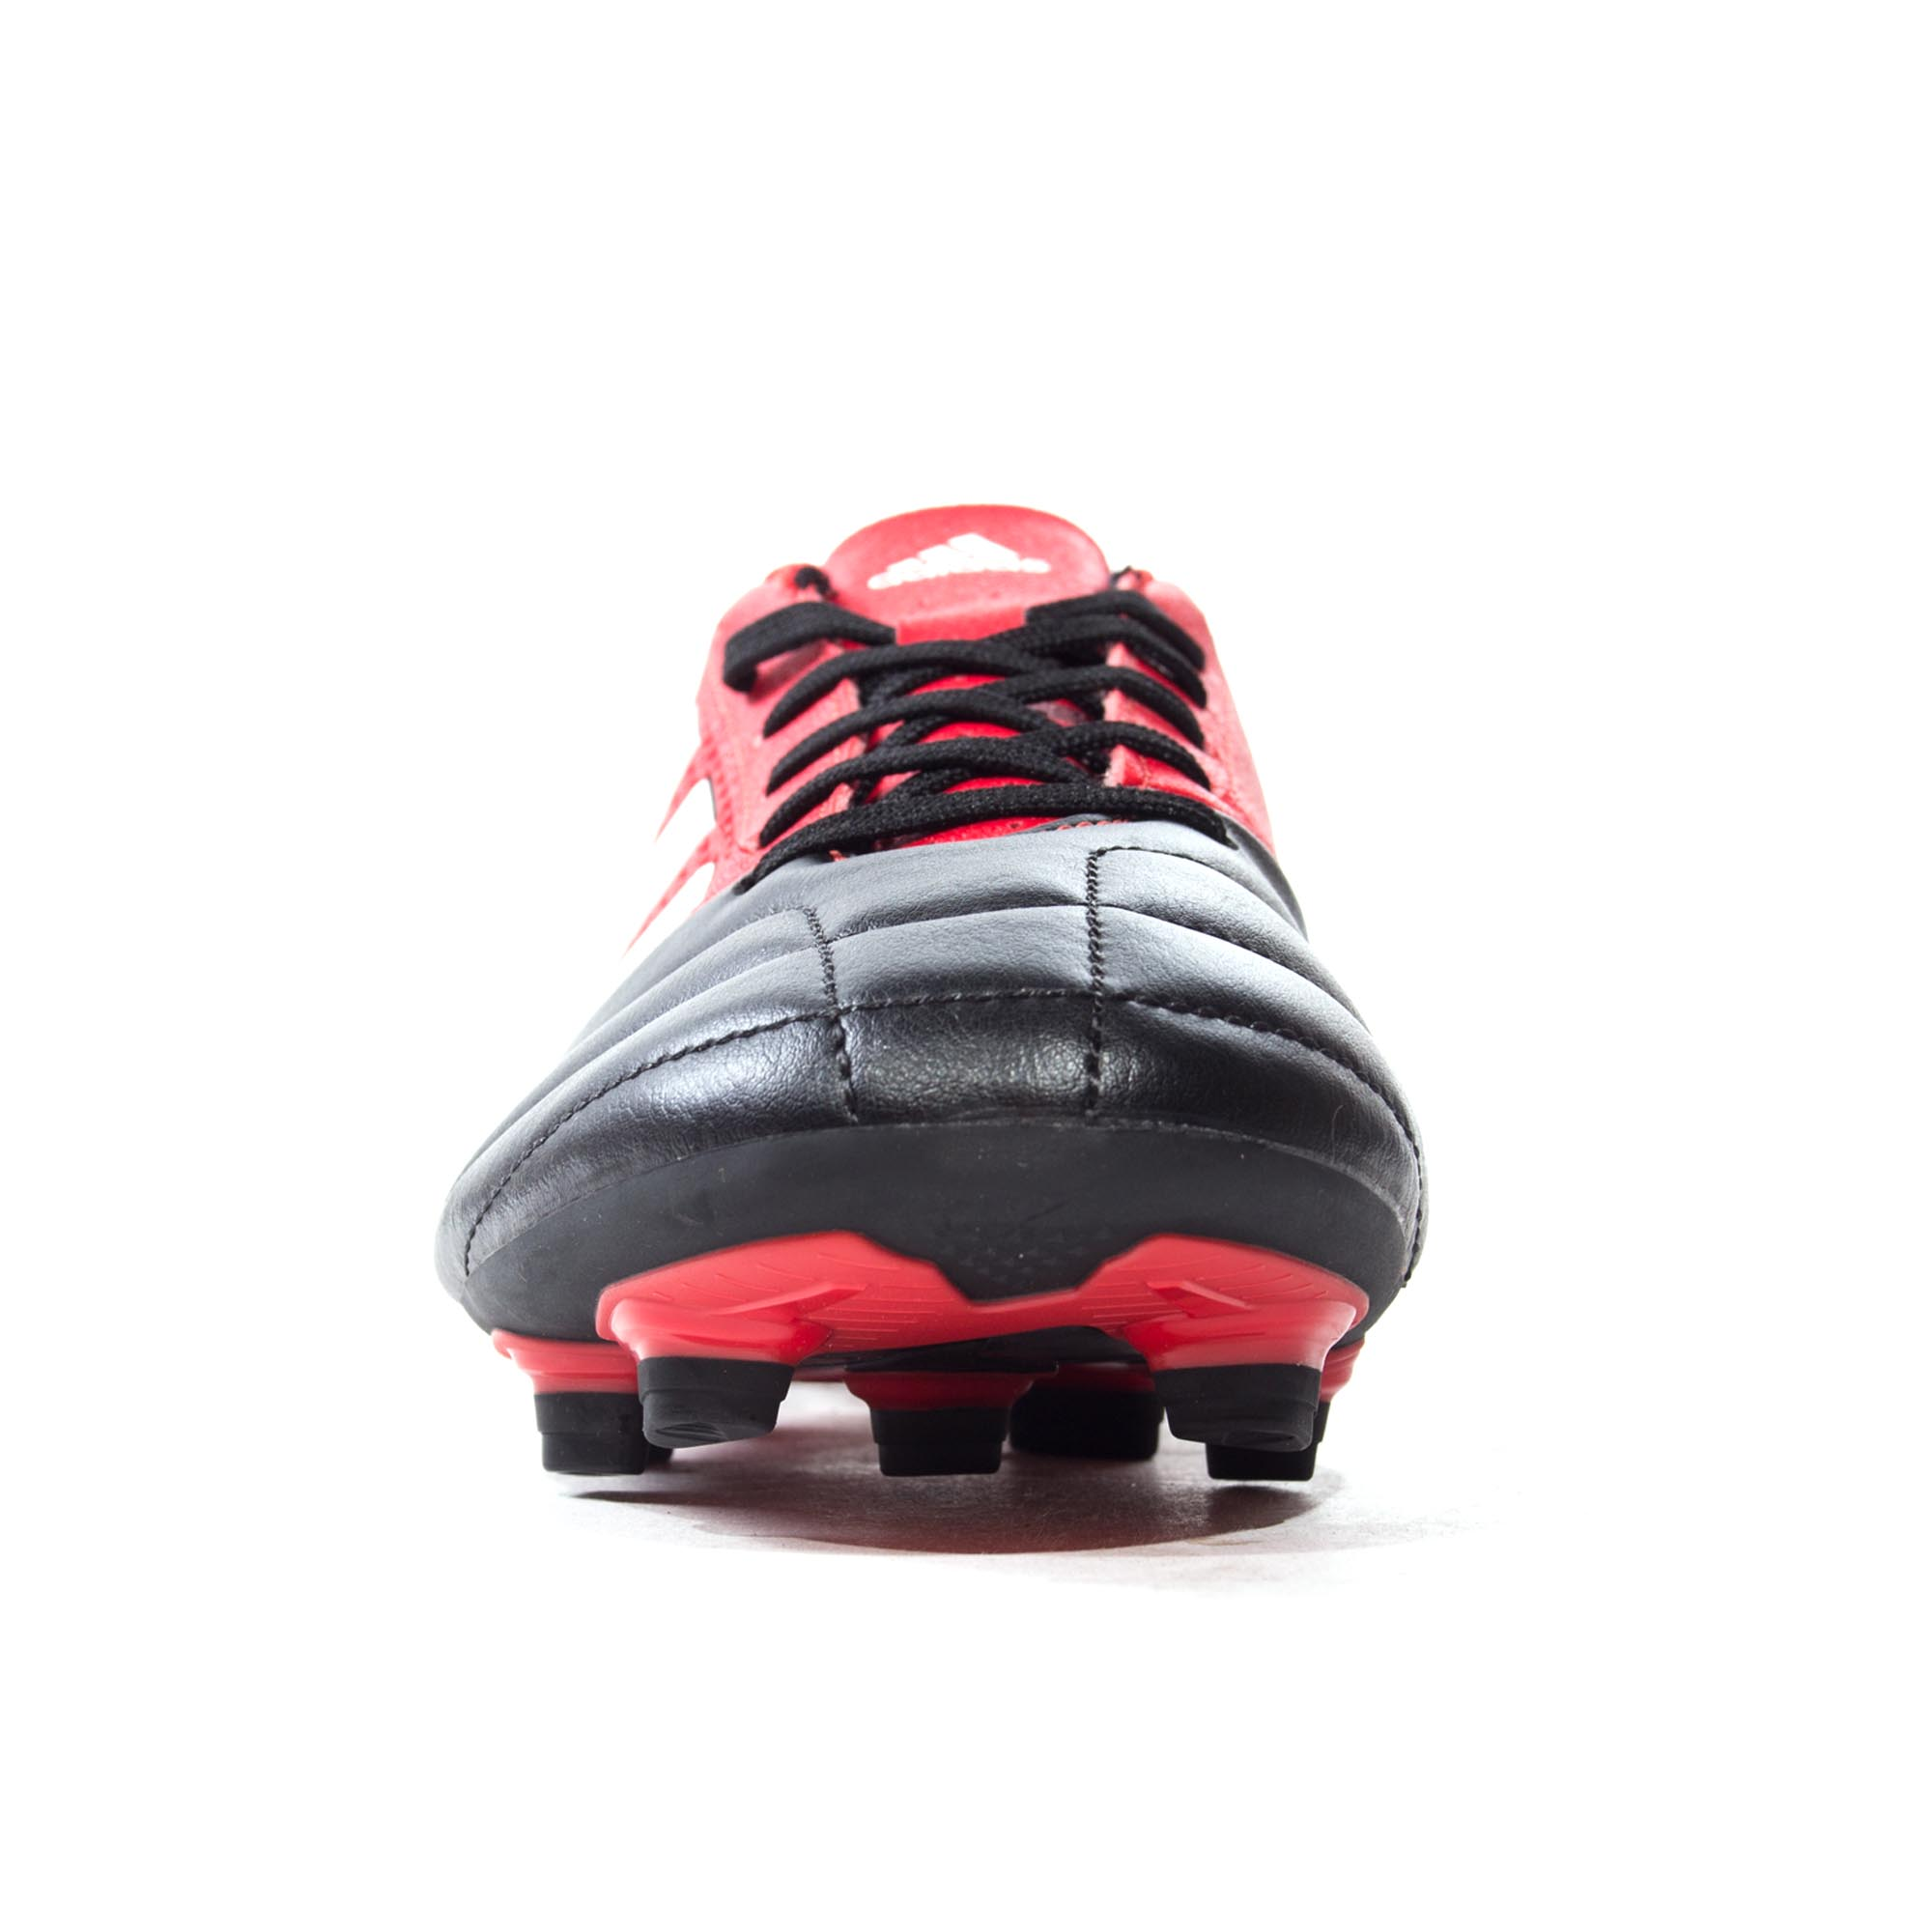 miniature 9 - ADIDAS-ACE-17-4-FG-Firm-Ground-pour-homme-Football-Boot-Noir-Rouge